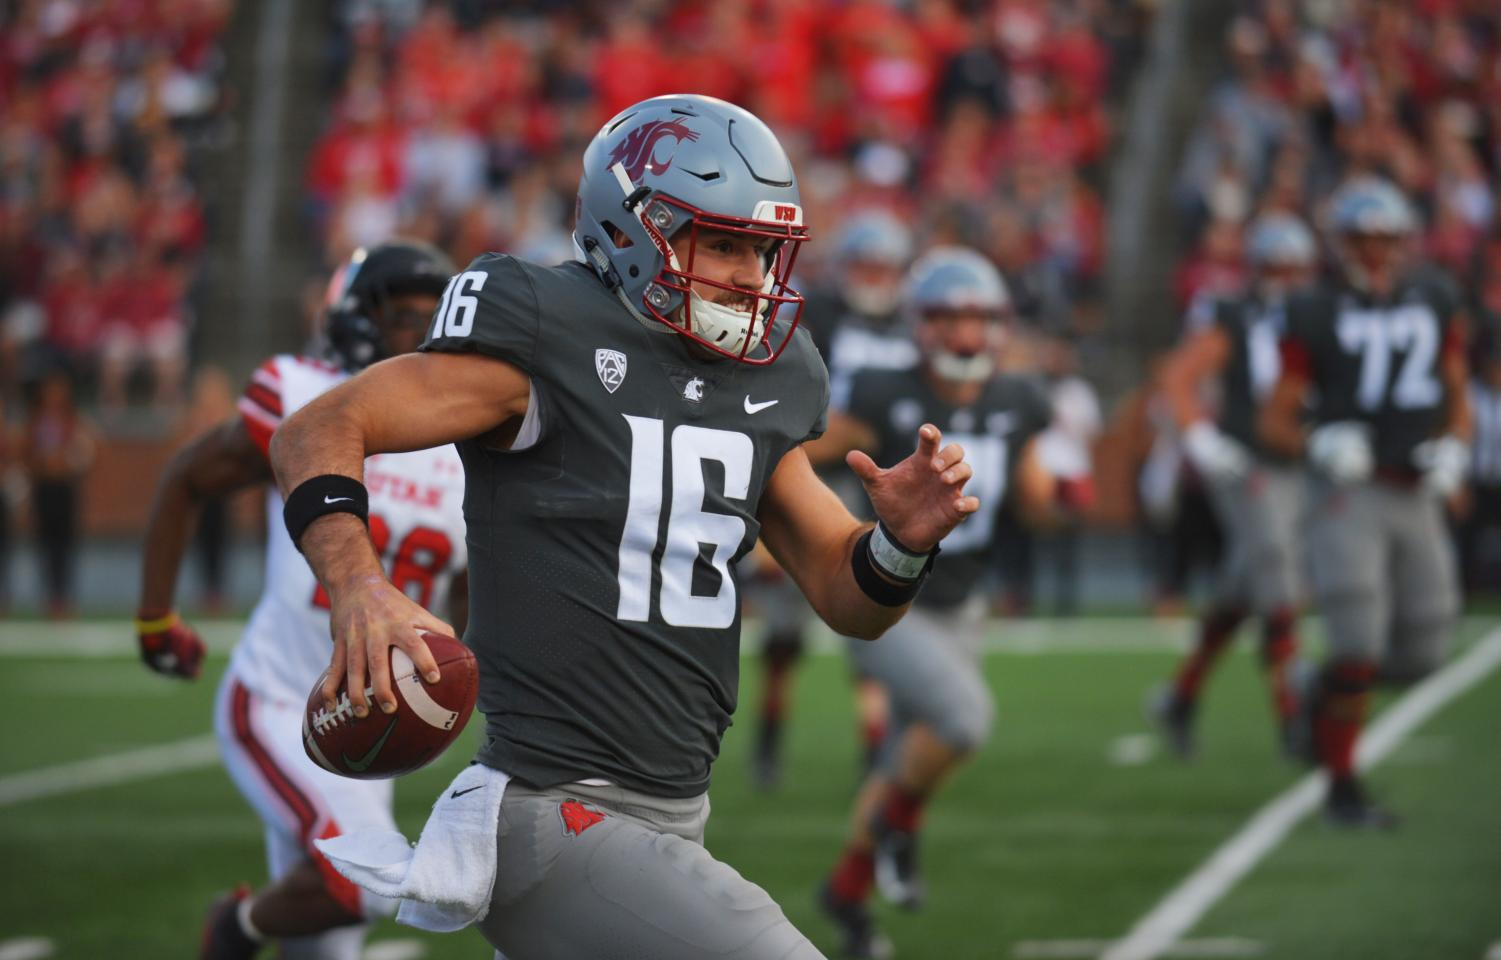 Quarterback Gardner Minshew II runs the ball down field for a gain of yards in the game against University of Utah on Sept. 30 at Martin Stadium.